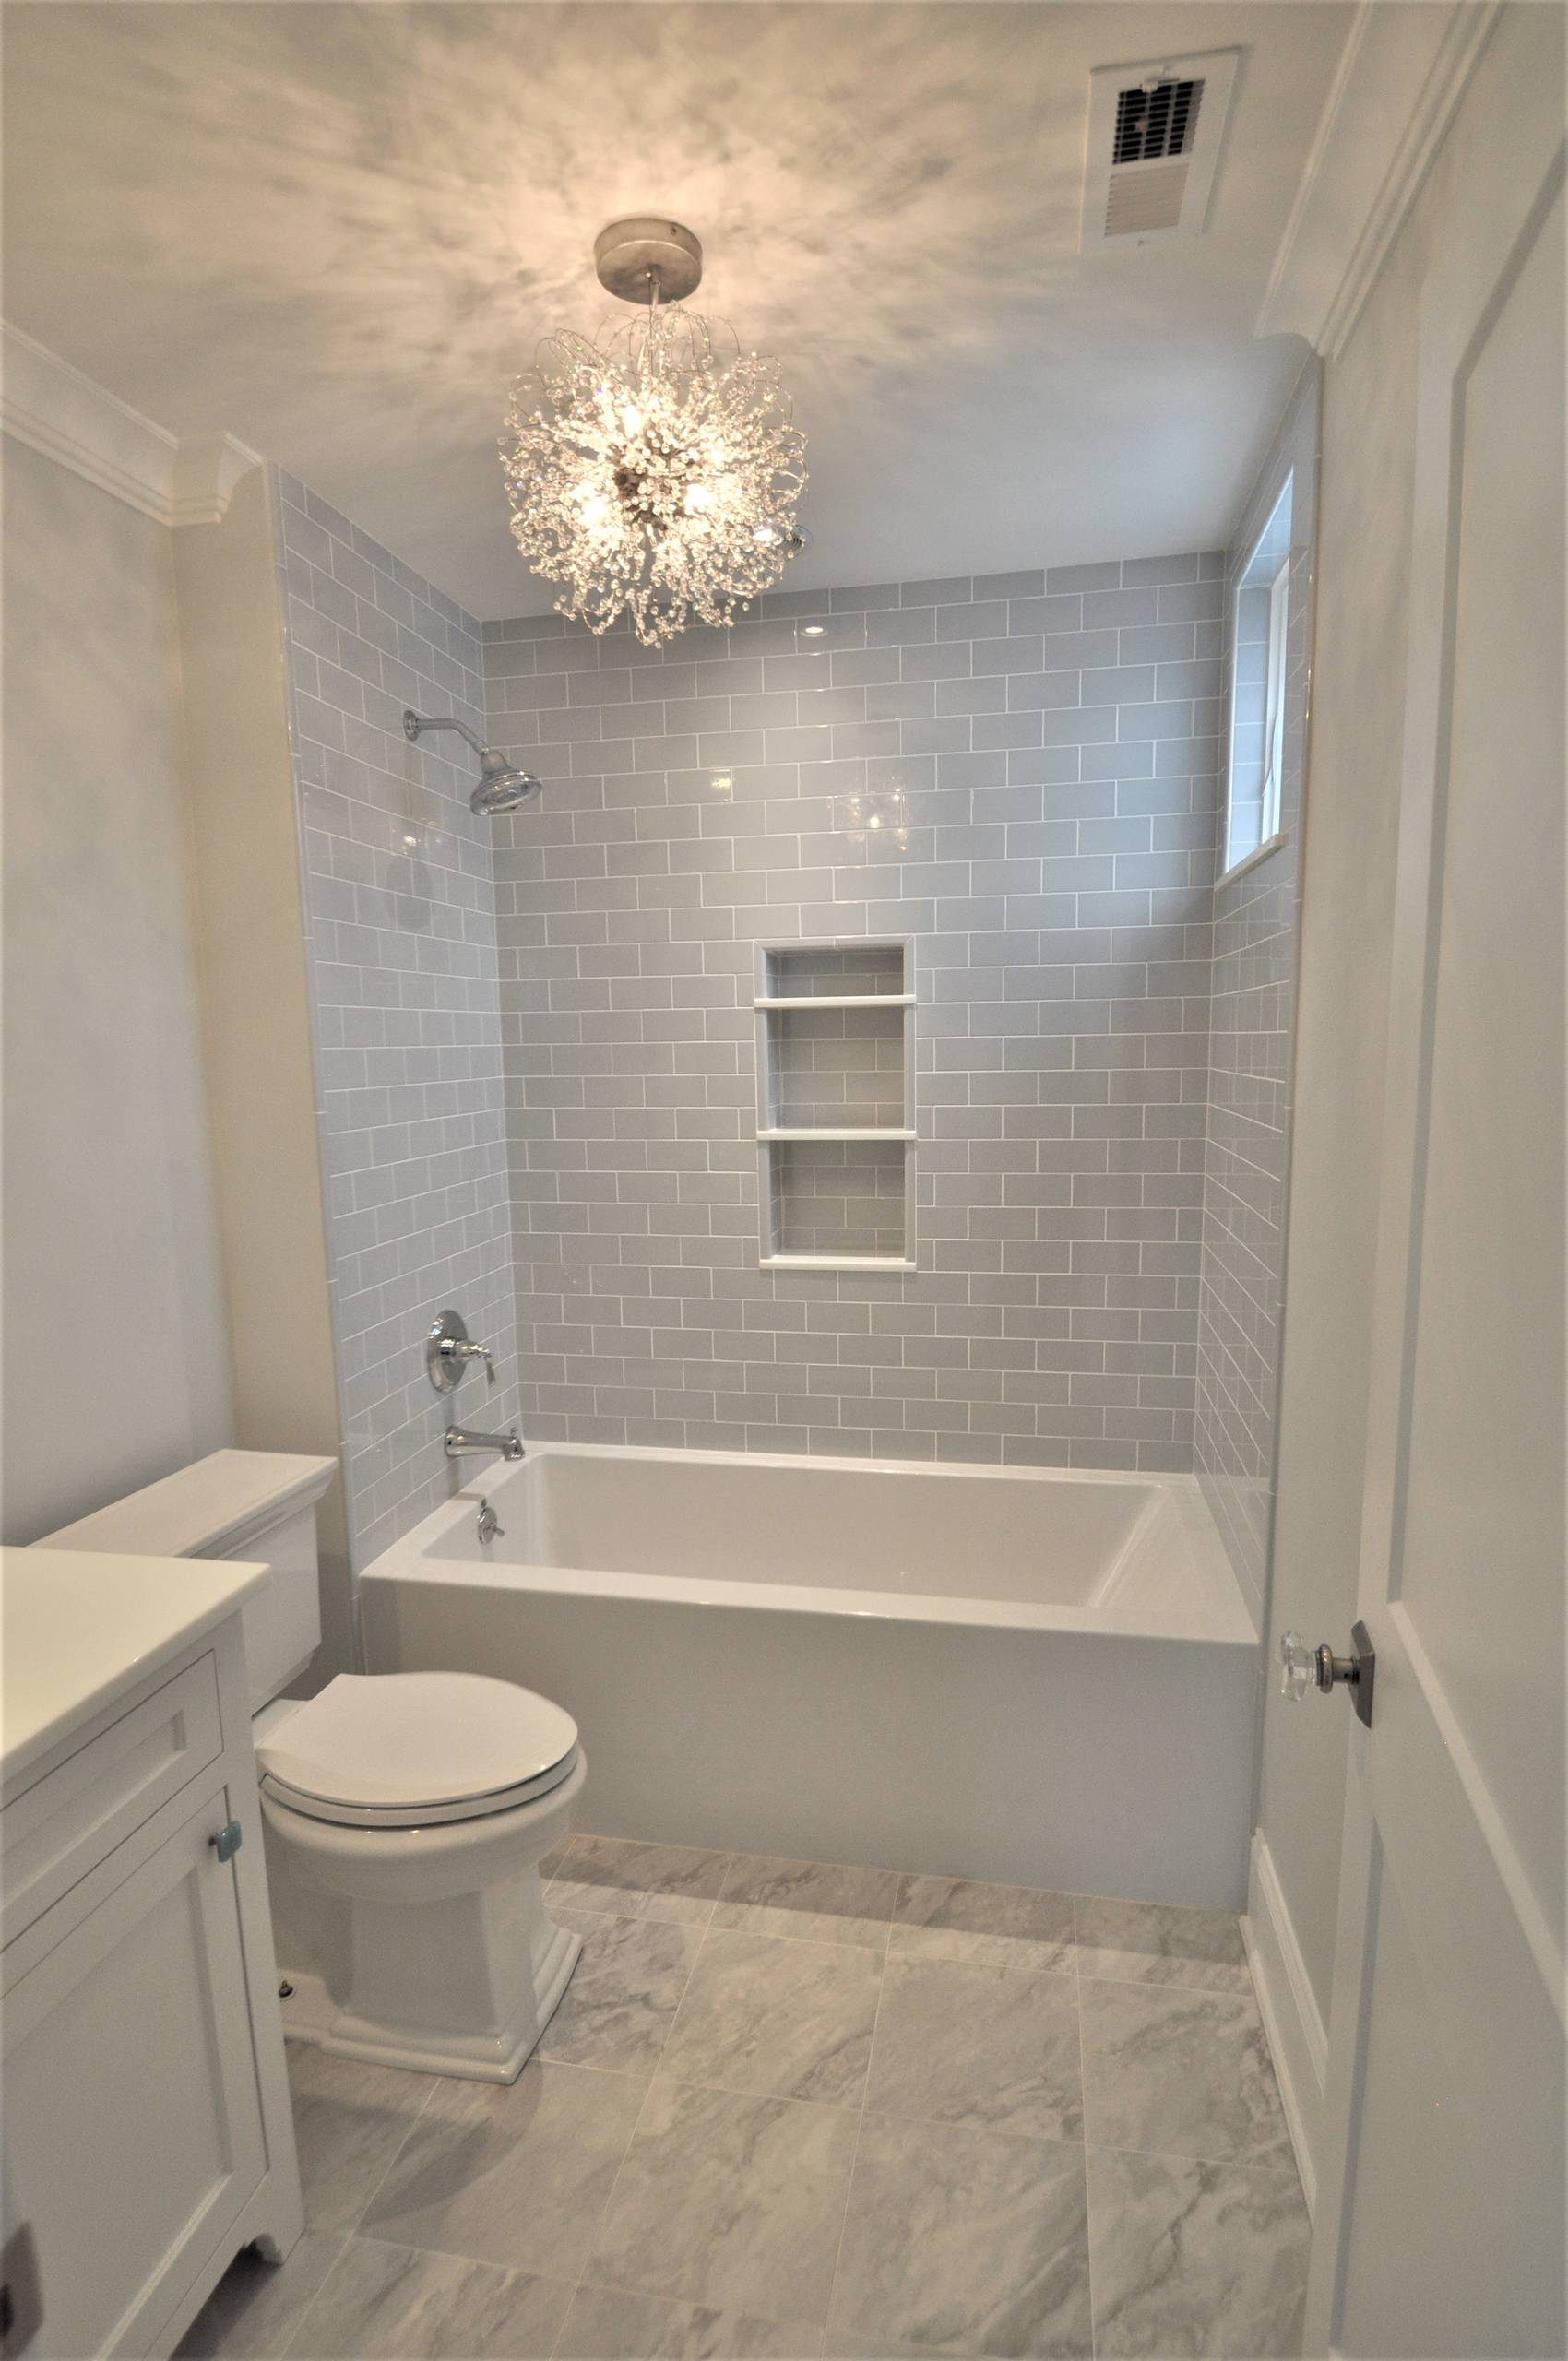 75 Beautiful Small Bathroom Pictures Ideas November 2020 Houzz